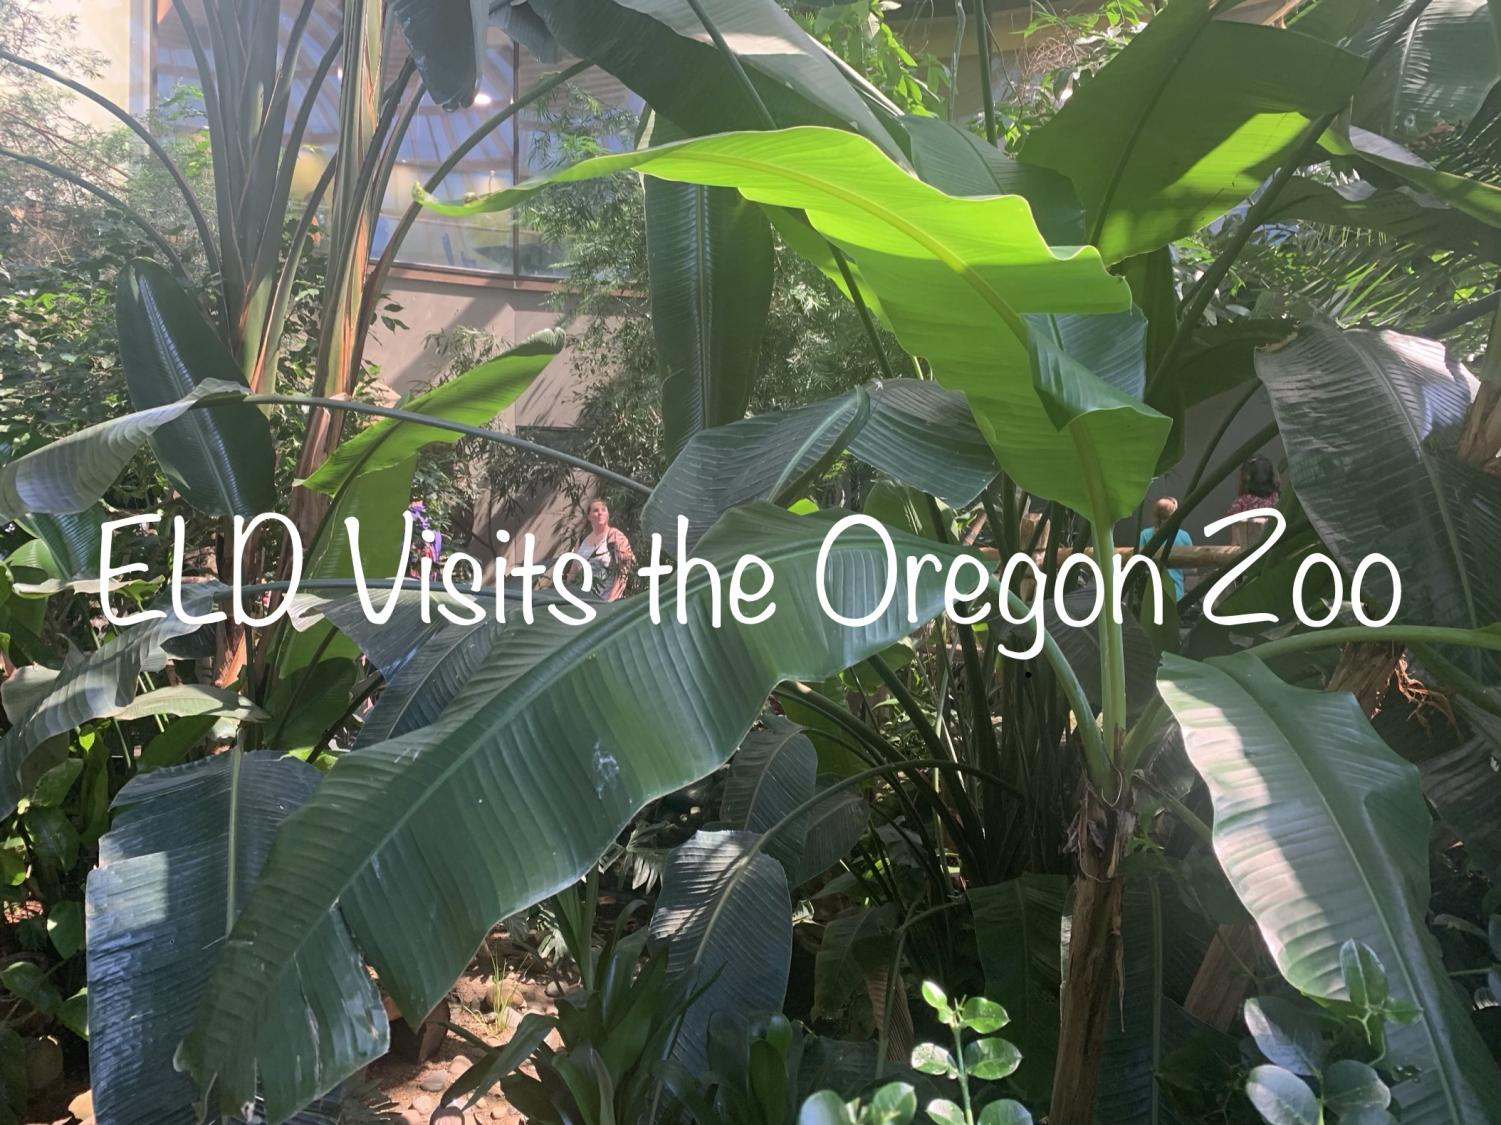 Students visited the Oregon zoo. After a quick lesson, they were able to walk around and see the other exhibits.